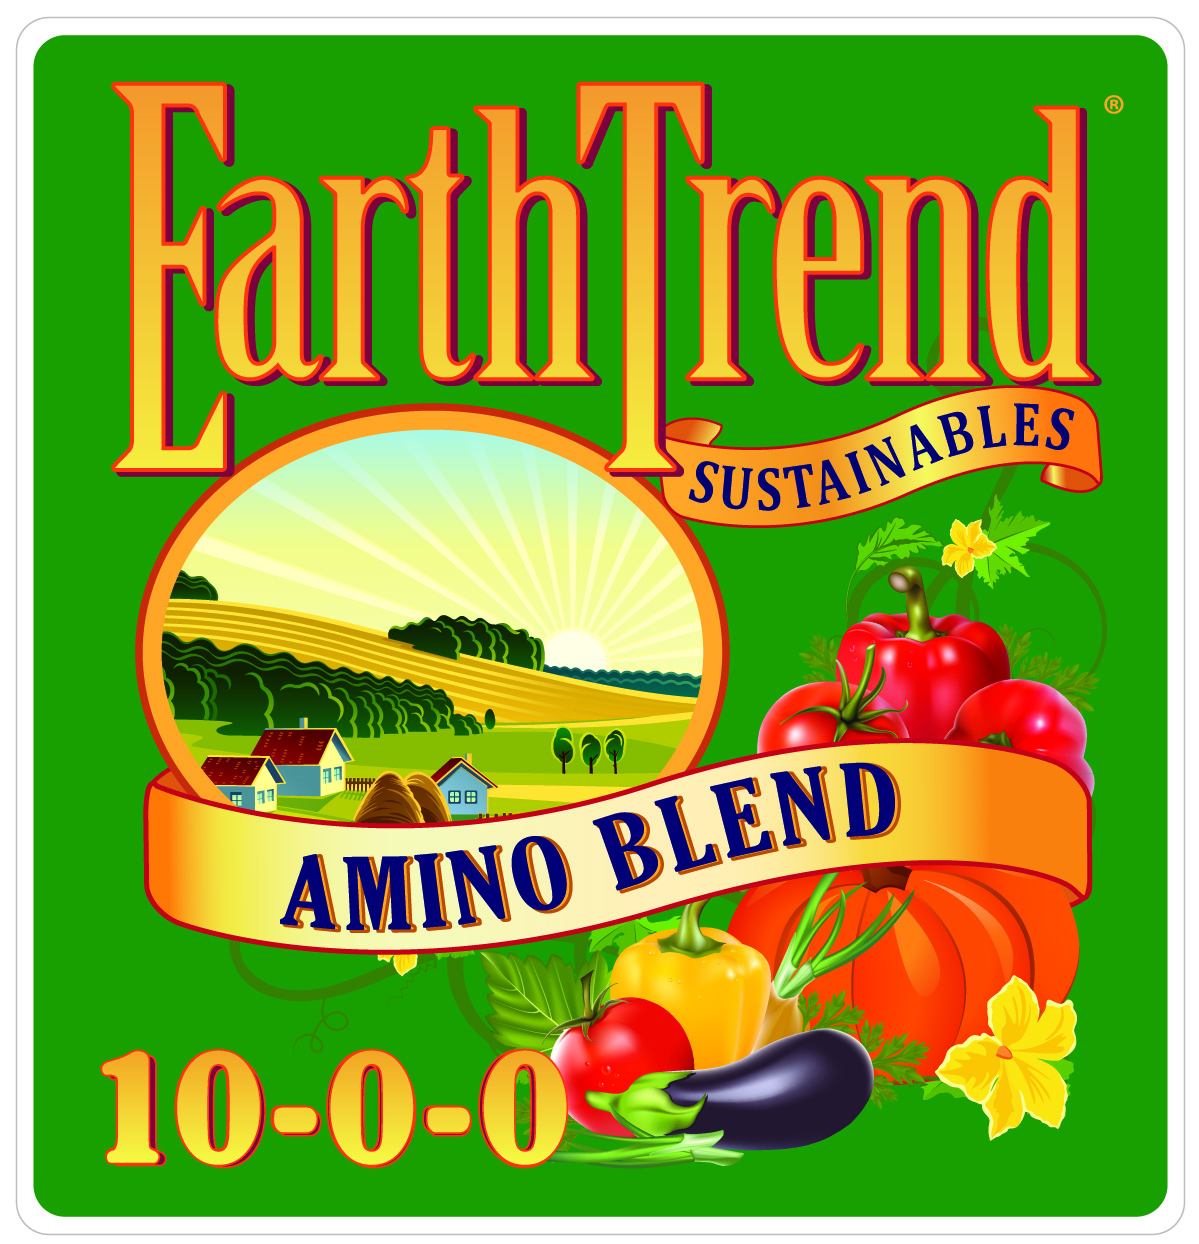 earthtrend amino blend 10-0-0